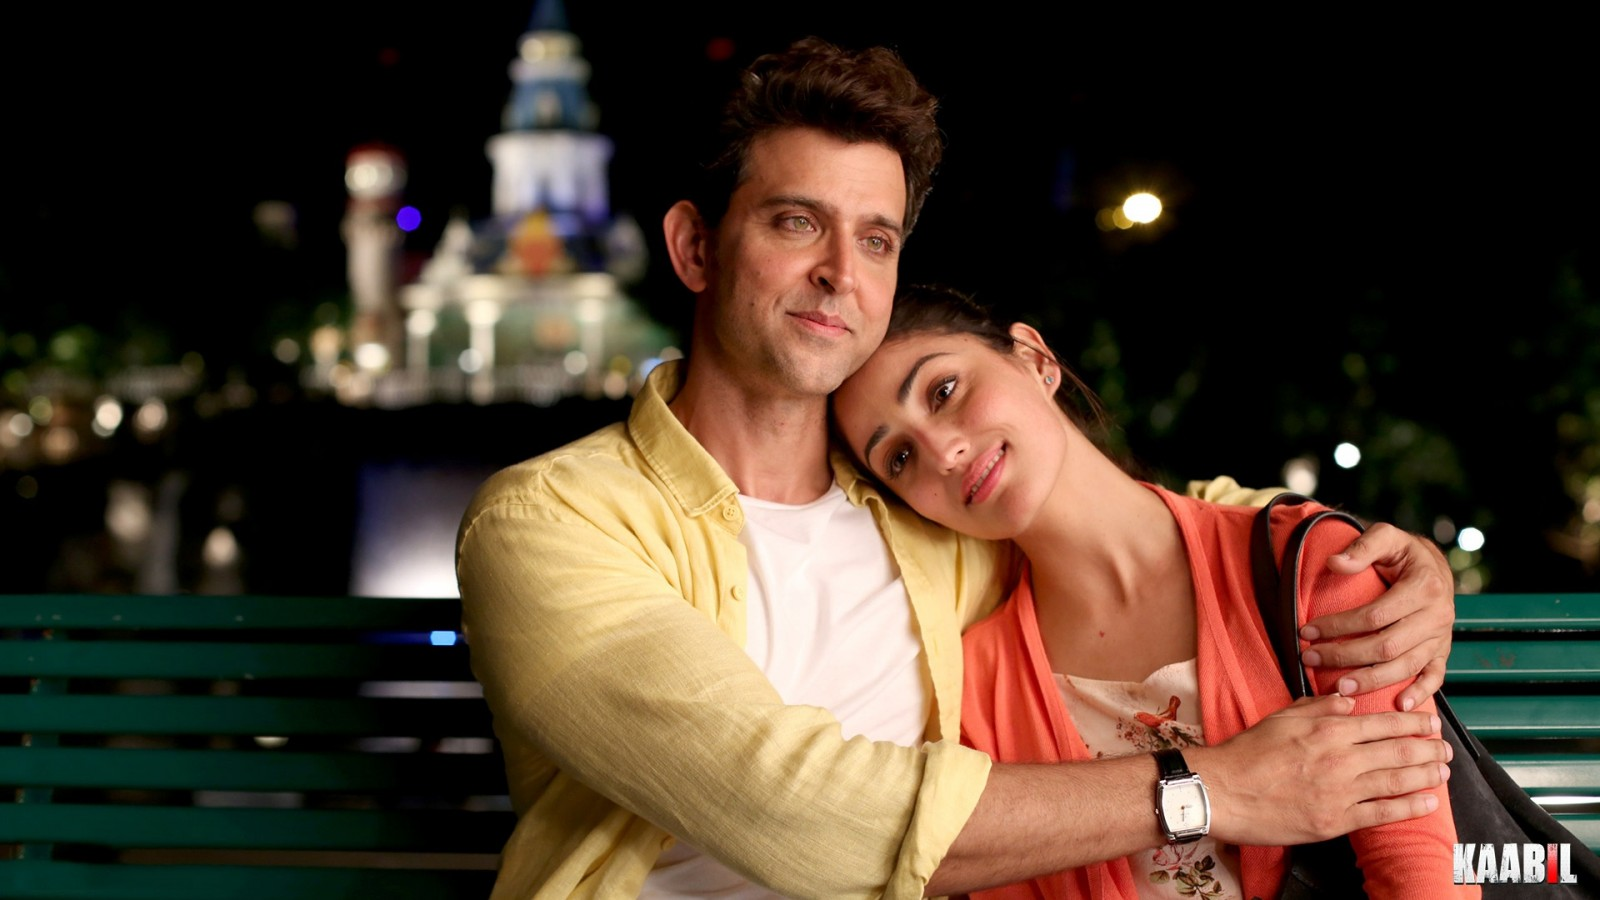 Inspirational Quotes Wallpaper For Iphone 4 Kaabil Hrithik Roshan Yami Gautam Wallpapers Hd